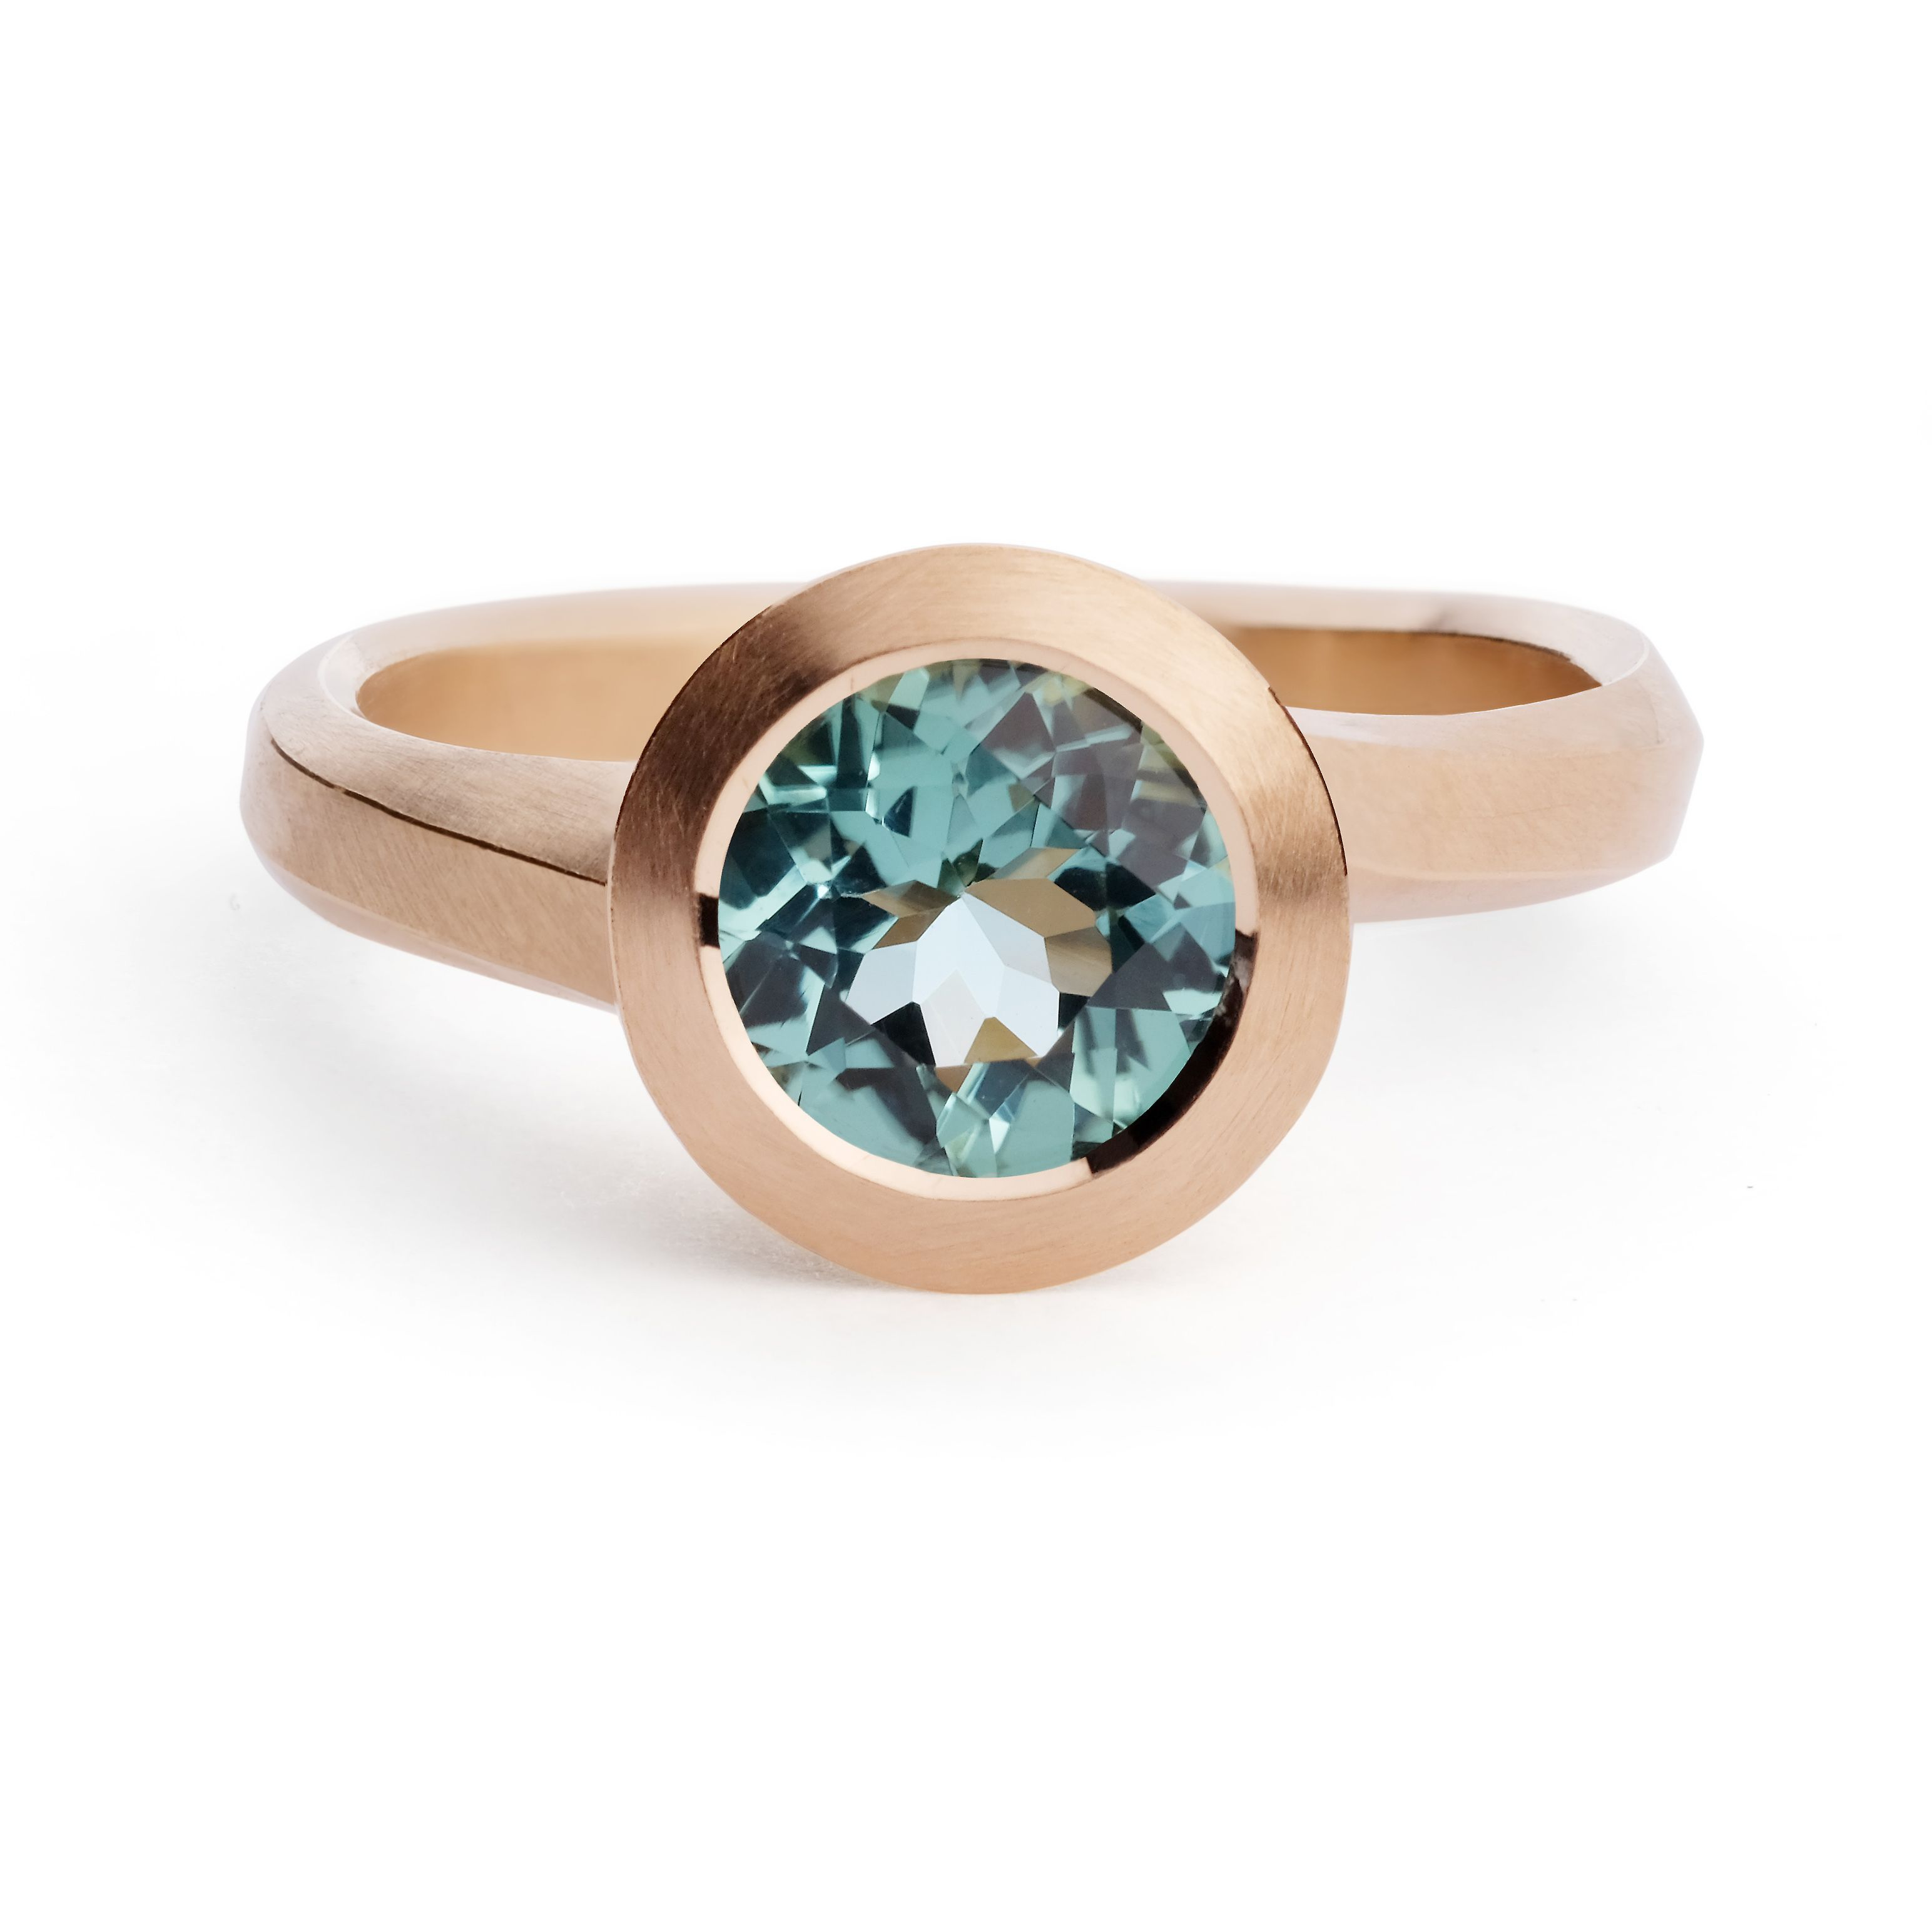 A beautiful shot of one of the latest pieces from our Arris collection featuring a gorgeous seafoam tourmaline. Available in our Exmouth Market atelier or through our website. #seafoamtourmaline #greenbluetourmaline #tourmaline #handcarved #arrisring #rosegold #contemporaryjewellery #alternativeengagementring #jewellerydesign #handcraftedjewellery #handmadelondon #jewelleryatelier #goldsmithing #finejewellery #bespokejewellery #handcarved